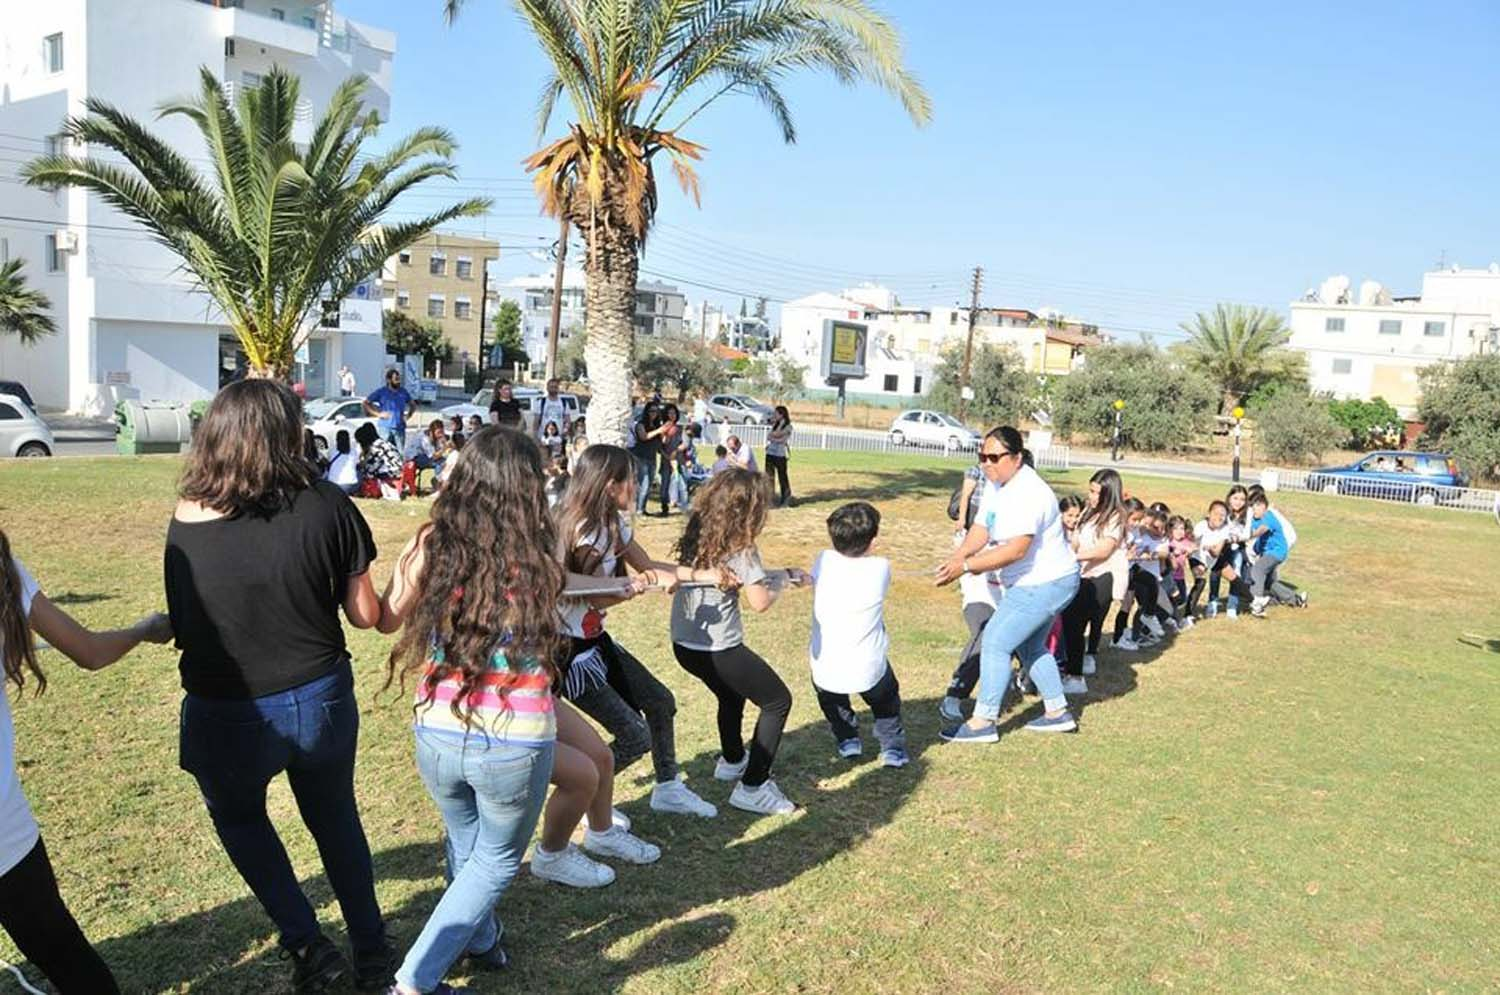 Traditional_Games_Festival_Engomi_Municipality_15April2018_4